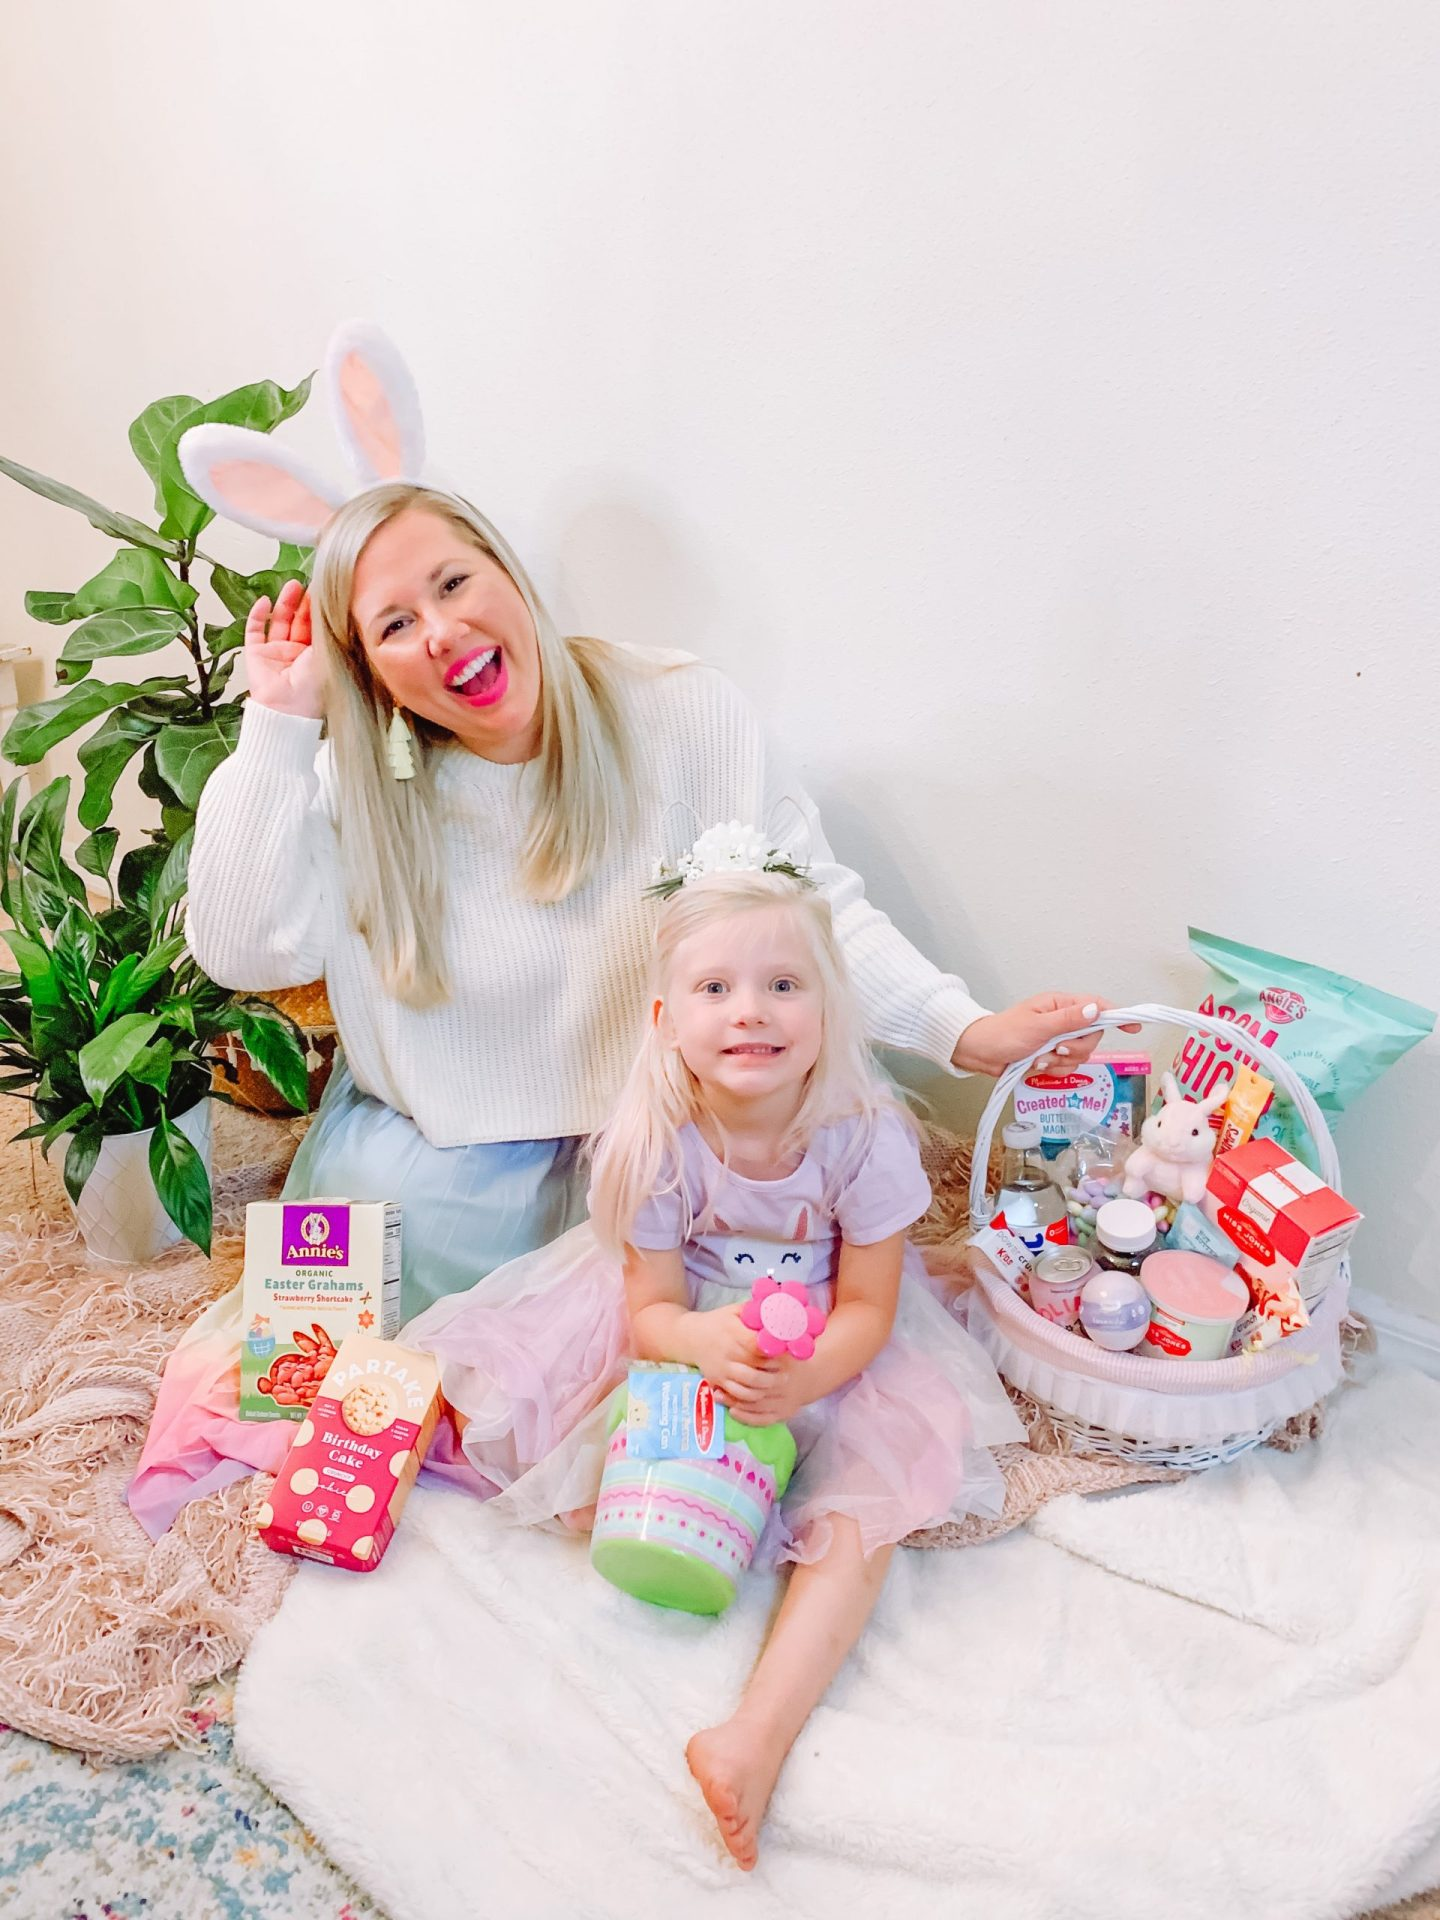 Easter Basket Idea for Kids with Healthy Snacks and Family-Fun Activities